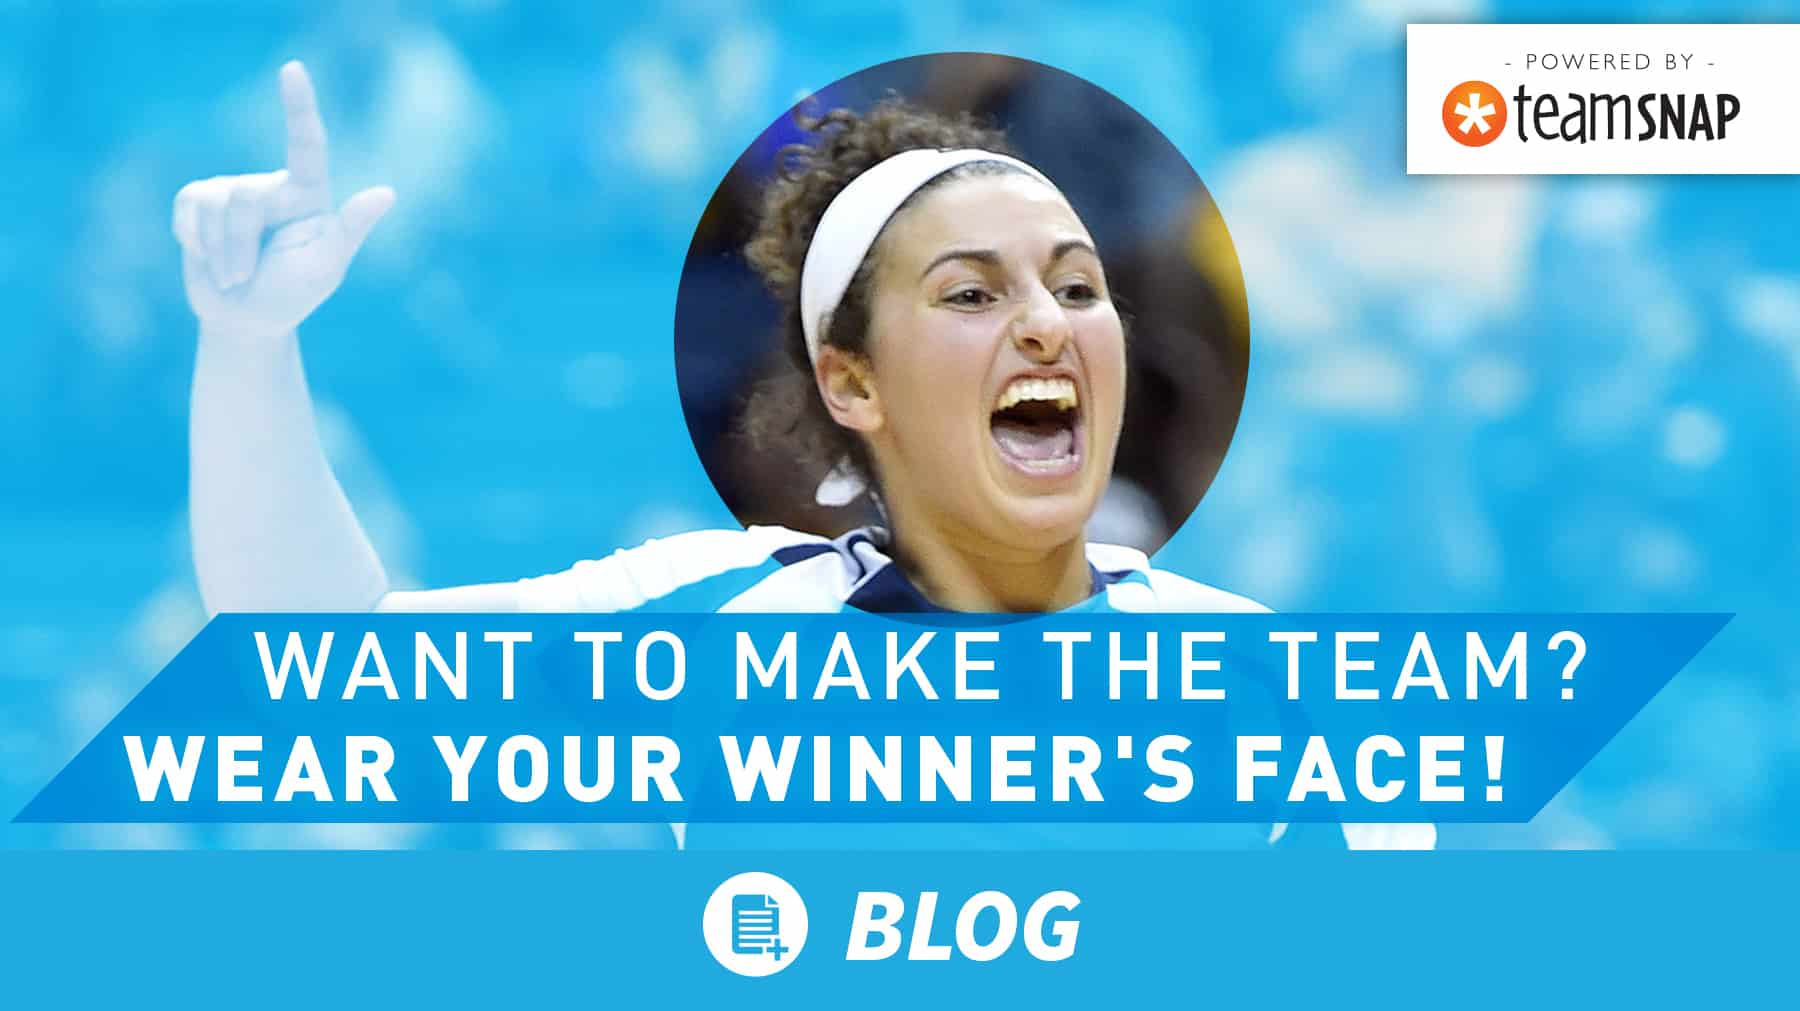 Want to make the team? Wear your winner's face